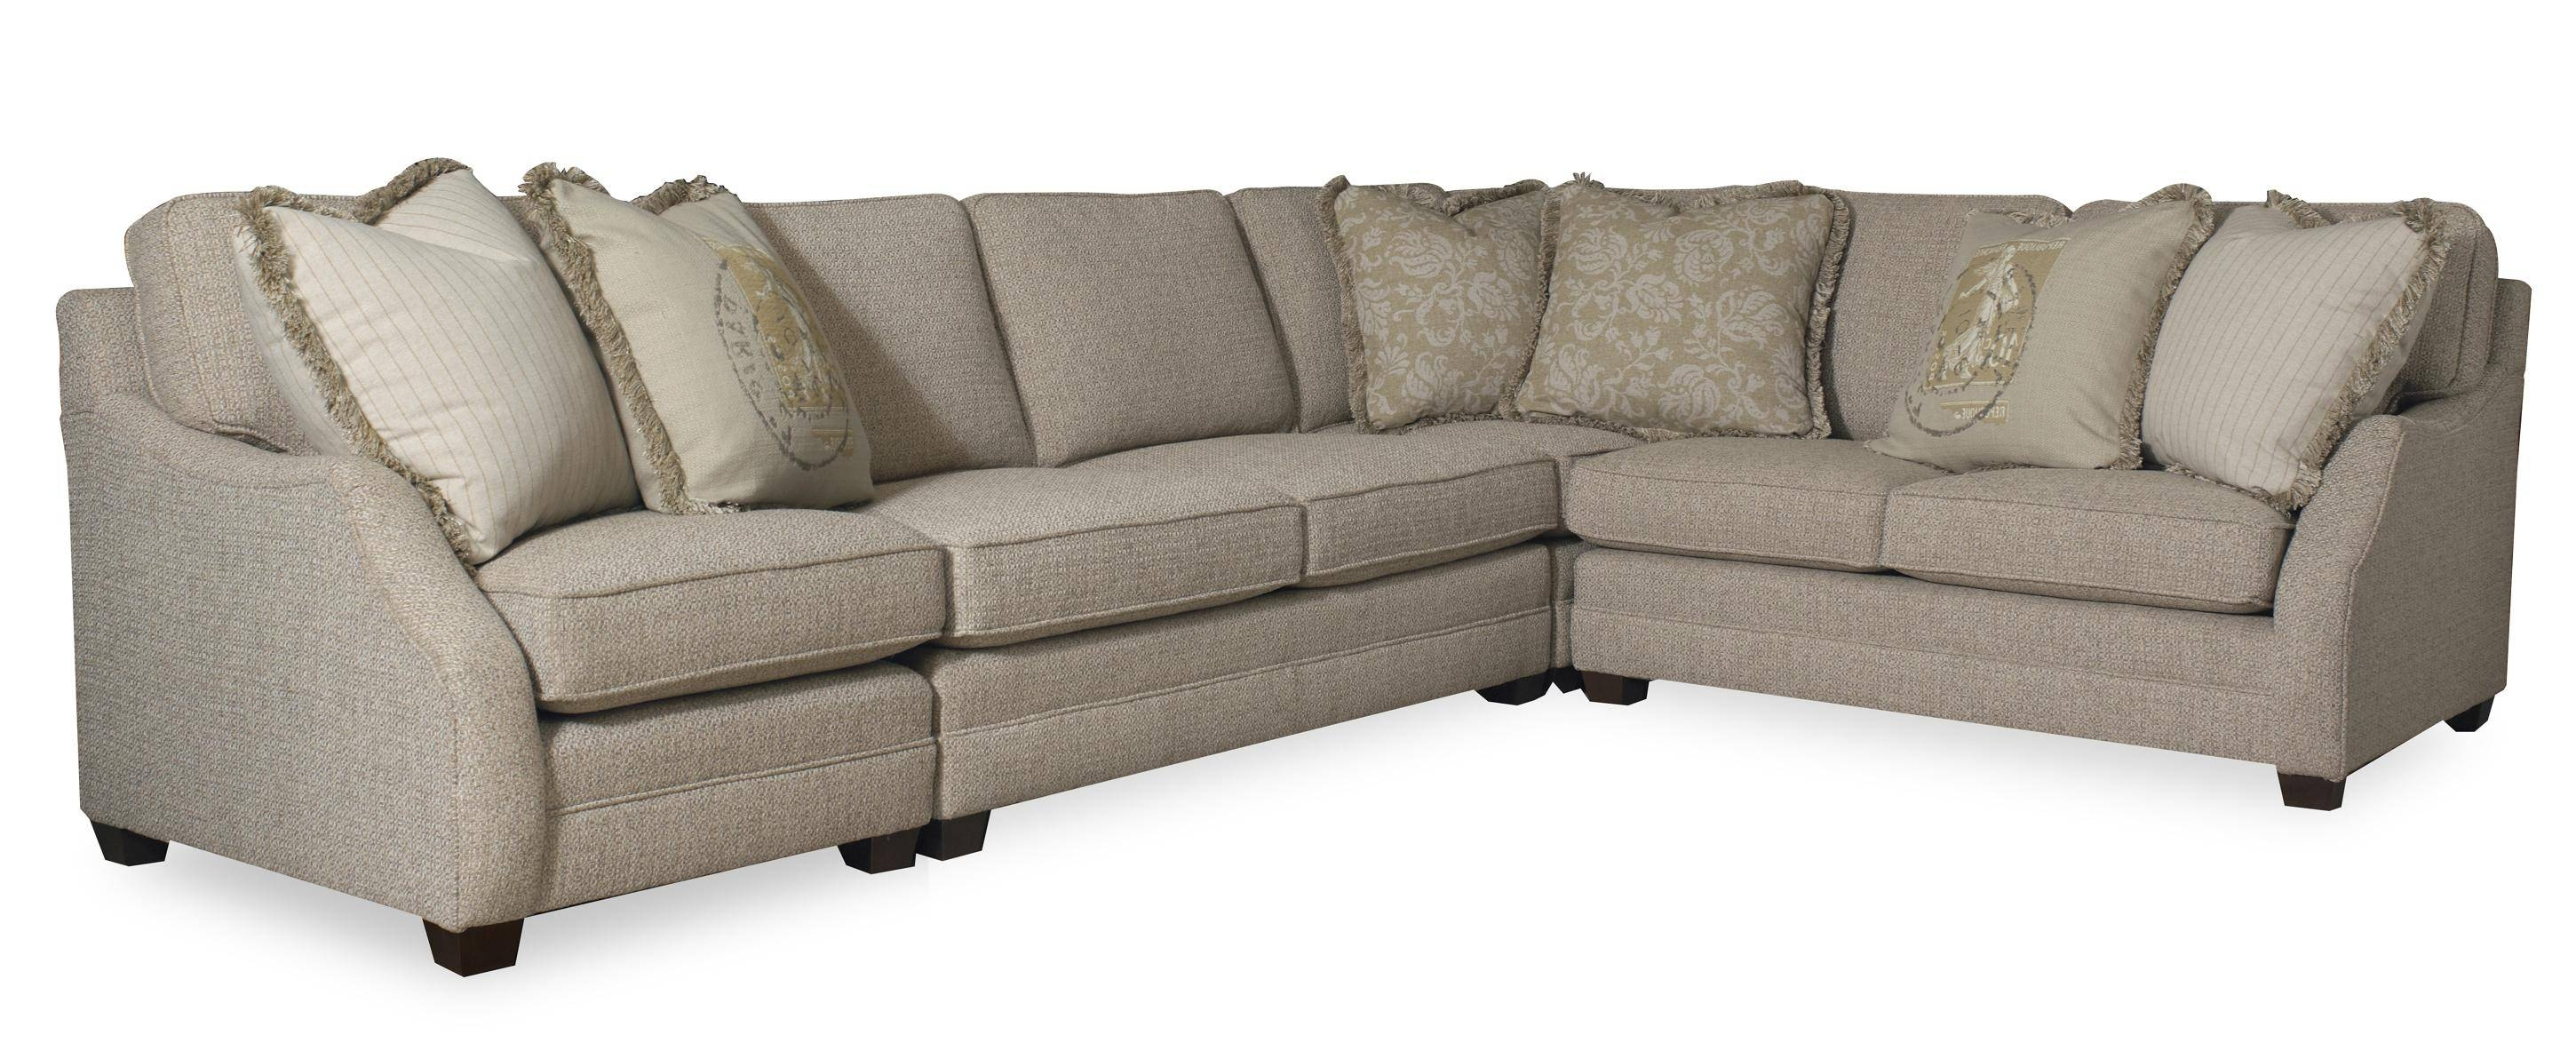 Transitional Three Piece Sectional Sofa With Raf Sofa Return regarding Sam Moore Sofas (Image 15 of 15)